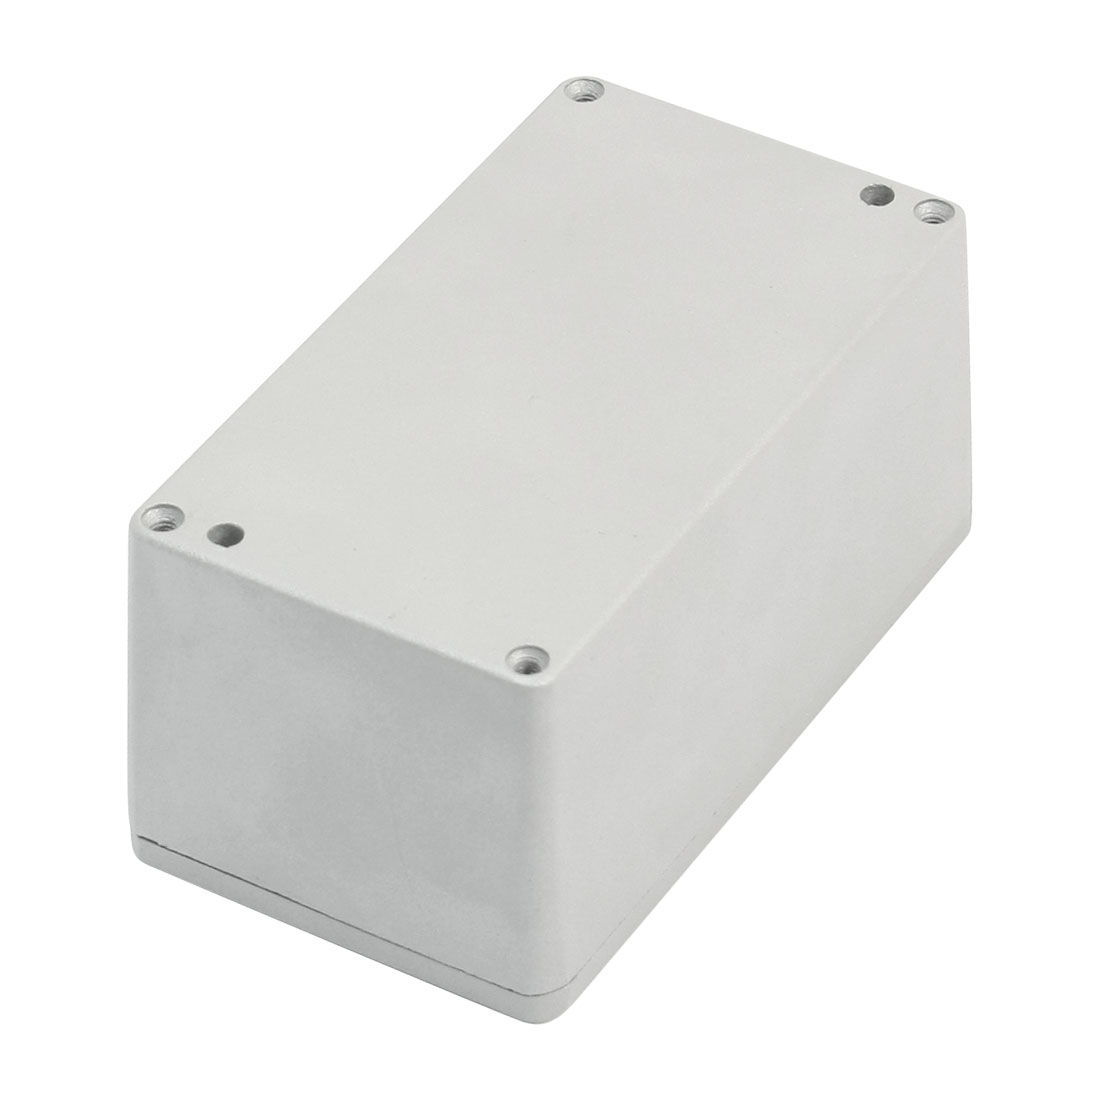 Cast Aluminium Surface Mounted Power Protective Case Junction Box 115x65x56mm